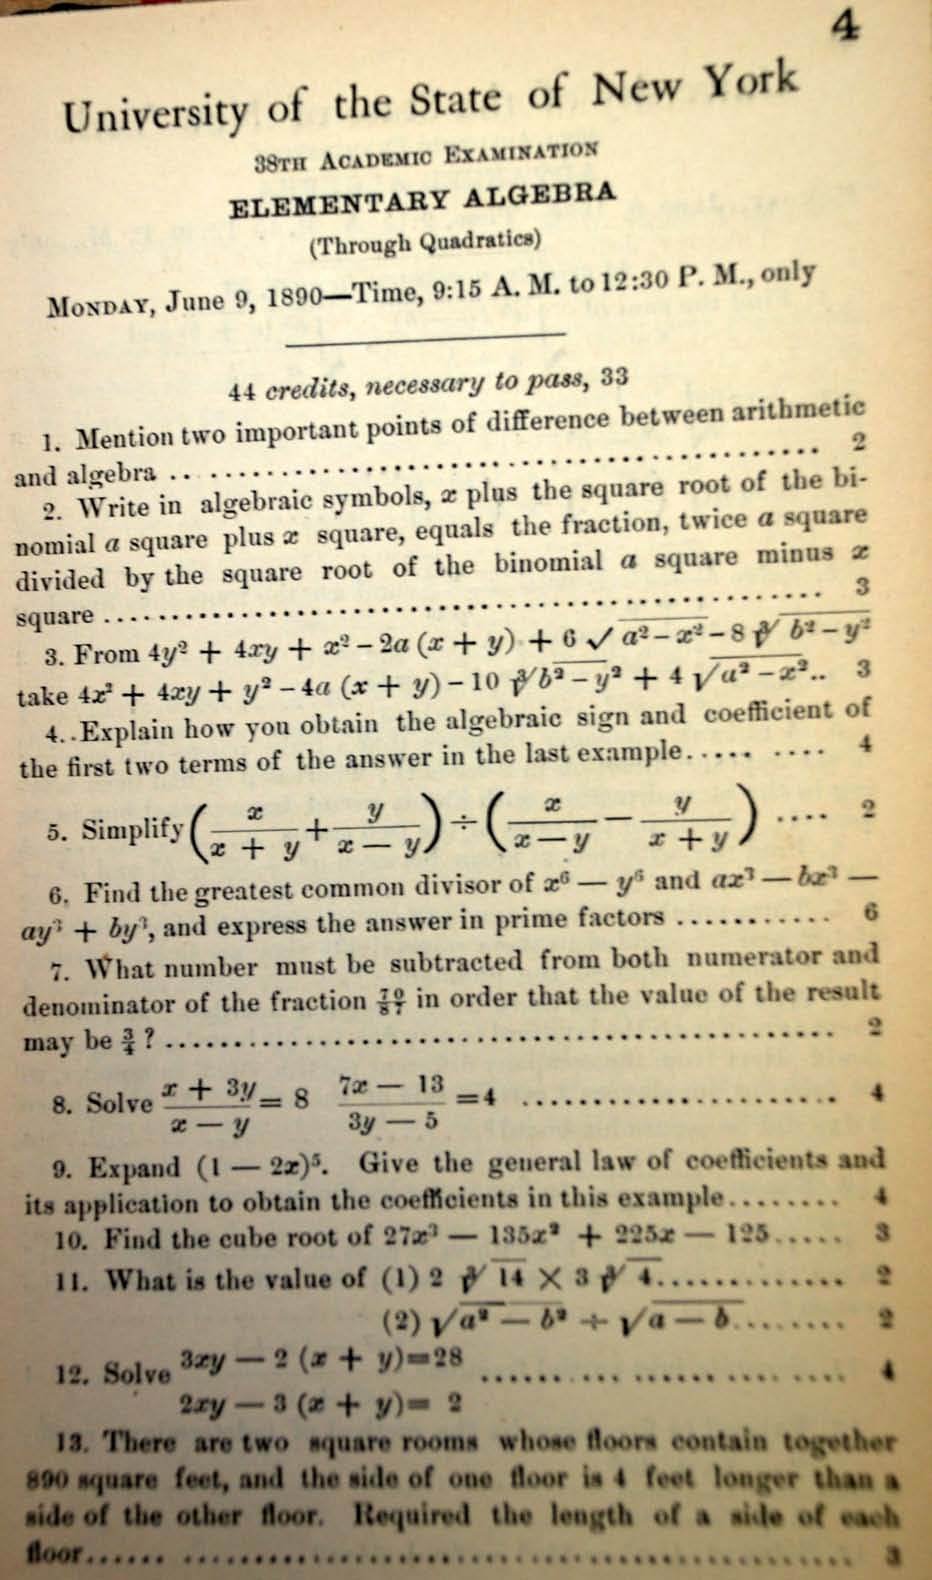 My 100th post so why not bash algebra granted and even the widely praised problem based program in math at exeter including by me here errs on the side of asking narrowly focused questions fandeluxe Image collections